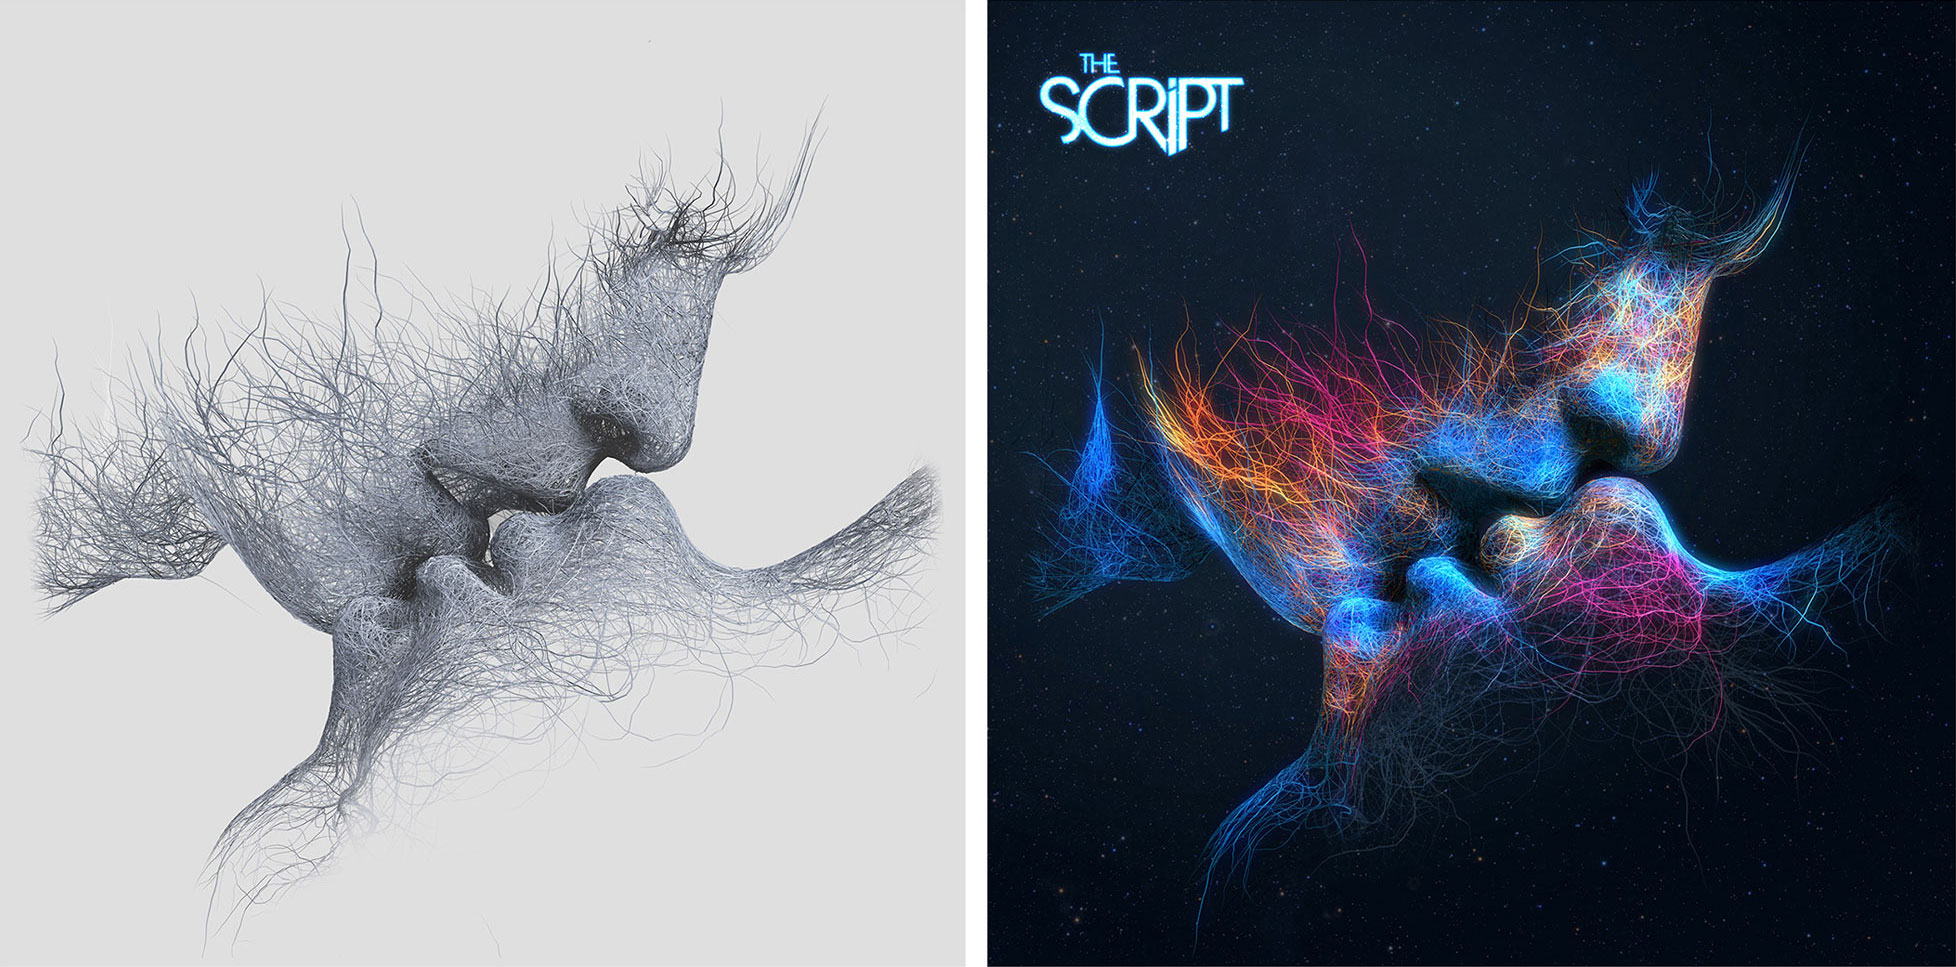 Script Sound Silence Album Cover Before After Photo Manipulation Effects Photoshop Dublin London